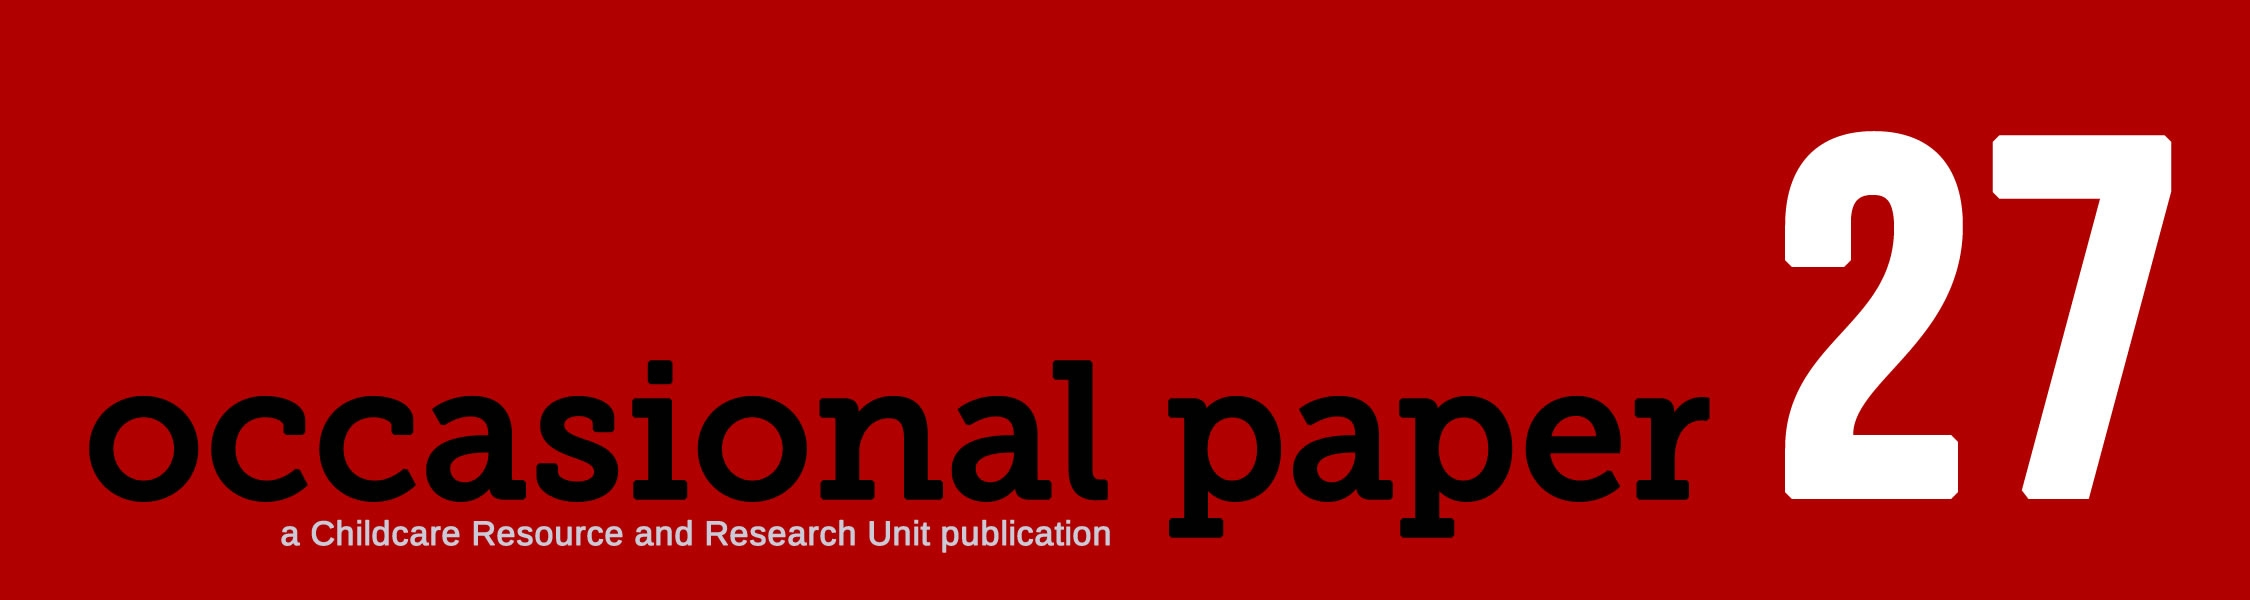 Occasional paper 27